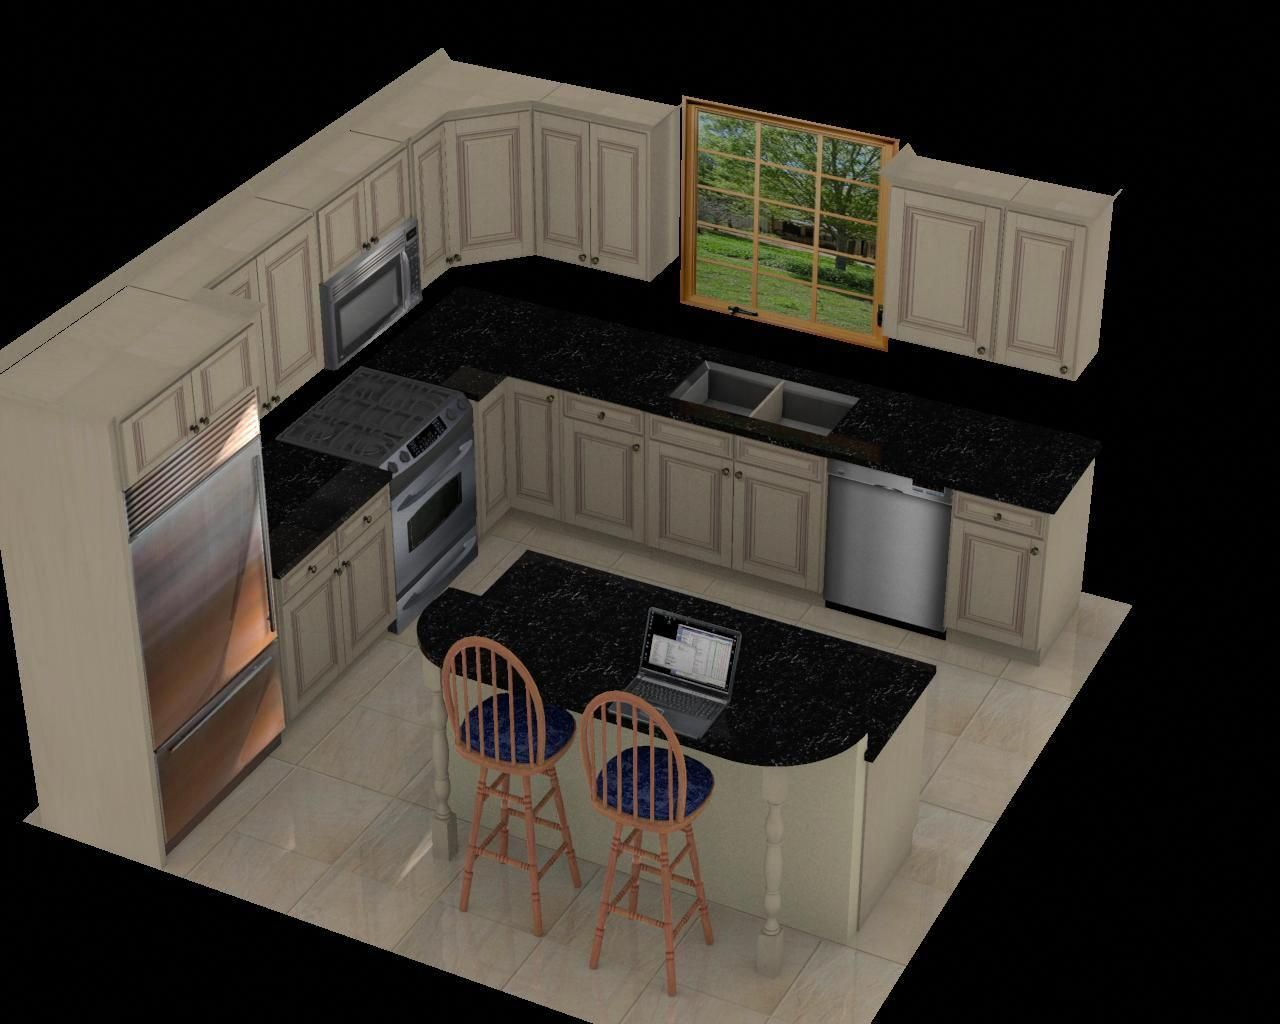 Luxury 12x12 Kitchen Layout With Island 51 For With 12x12 Kitchen Layout With Island L Kitchen Design Plans Small Kitchen Design Layout Kitchen Designs Layout